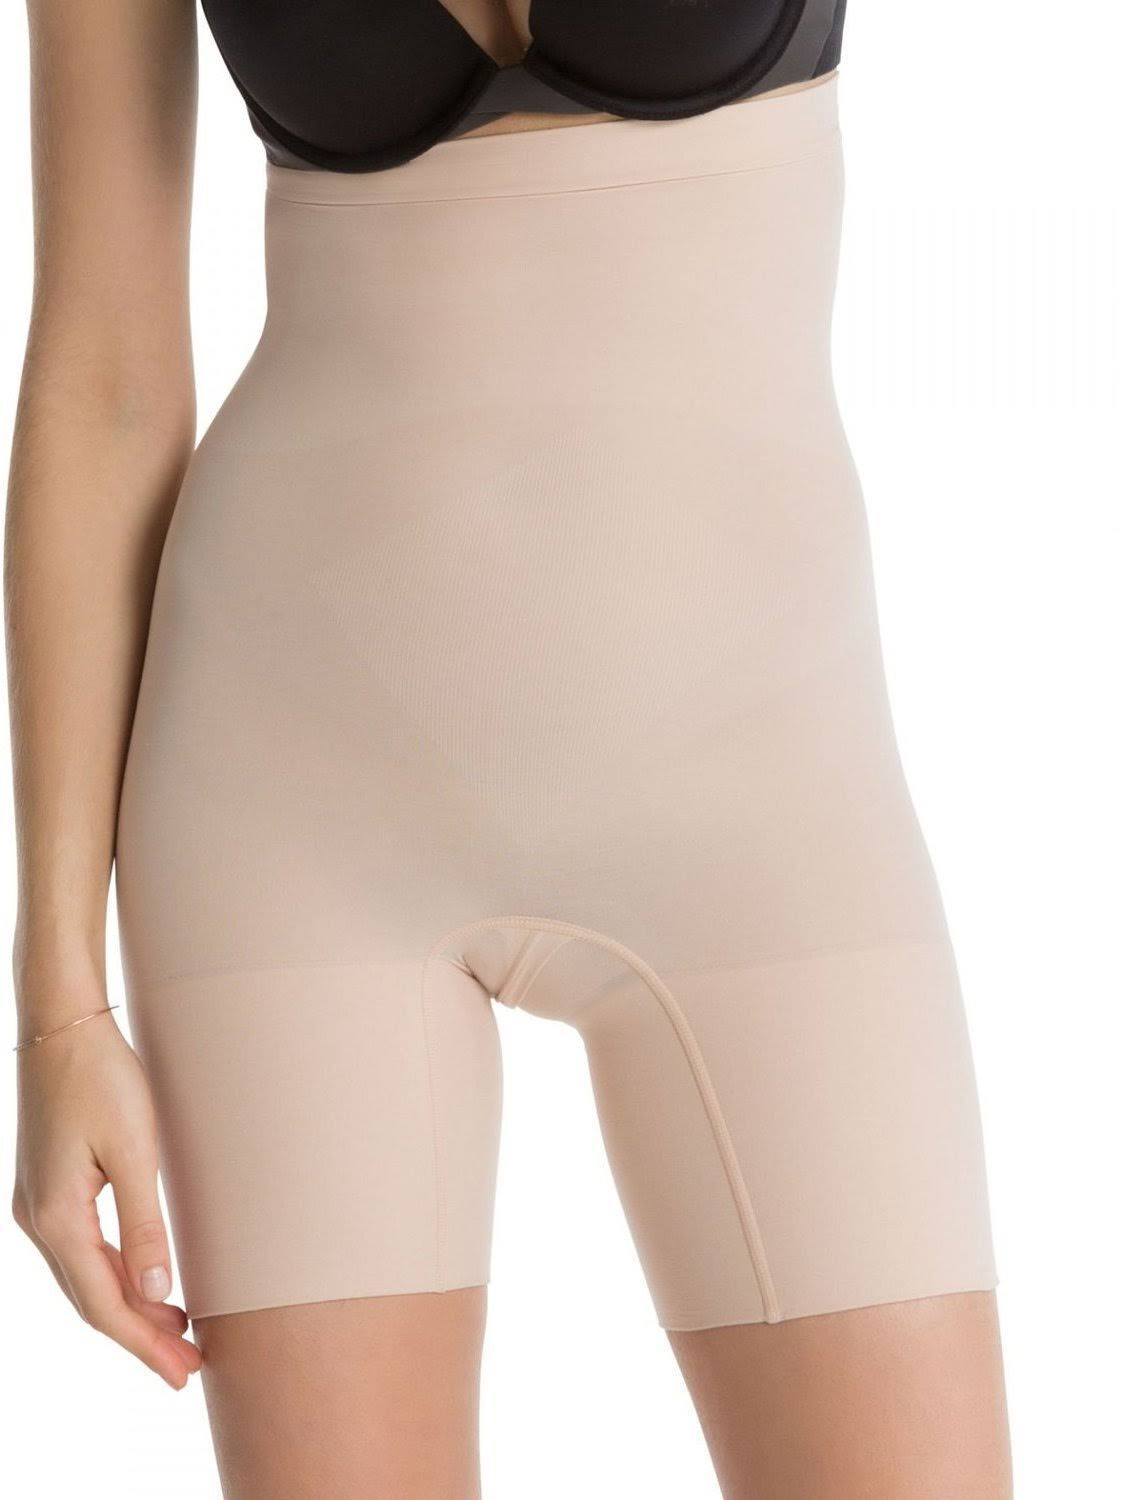 Spanx Women's Higher Power Shorts - Nude, Small